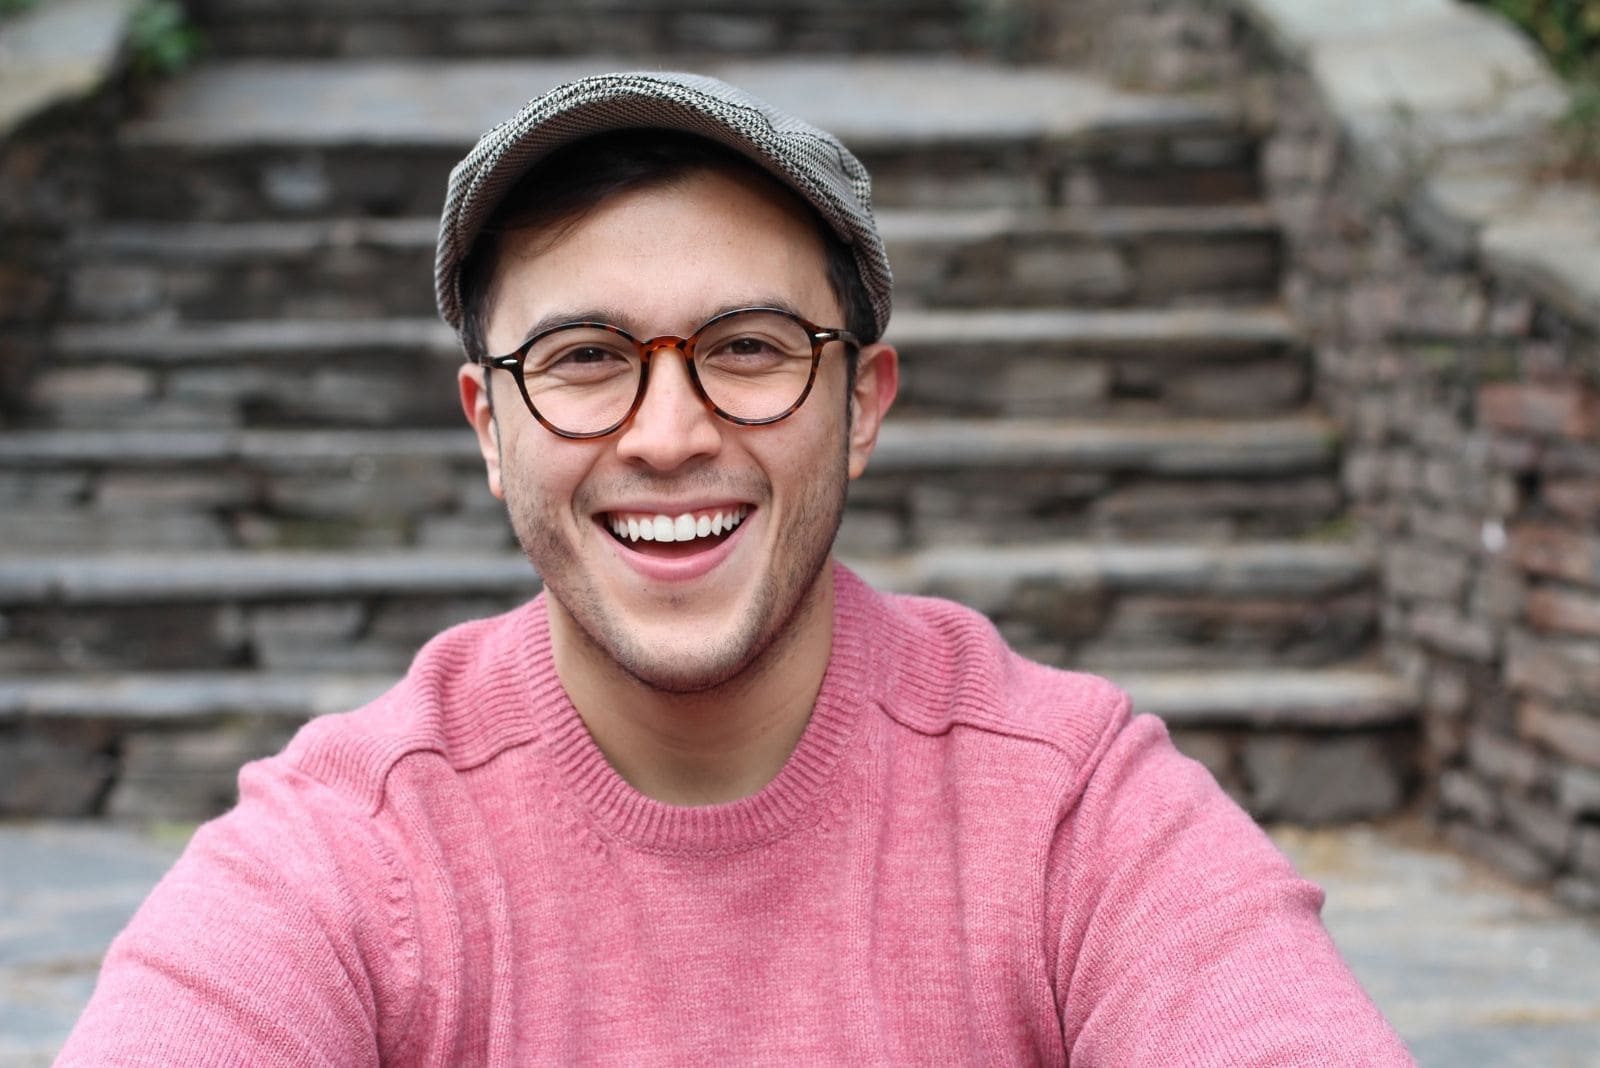 hip man smiling wearing hat and eyeglasses sitting near the cement stairs